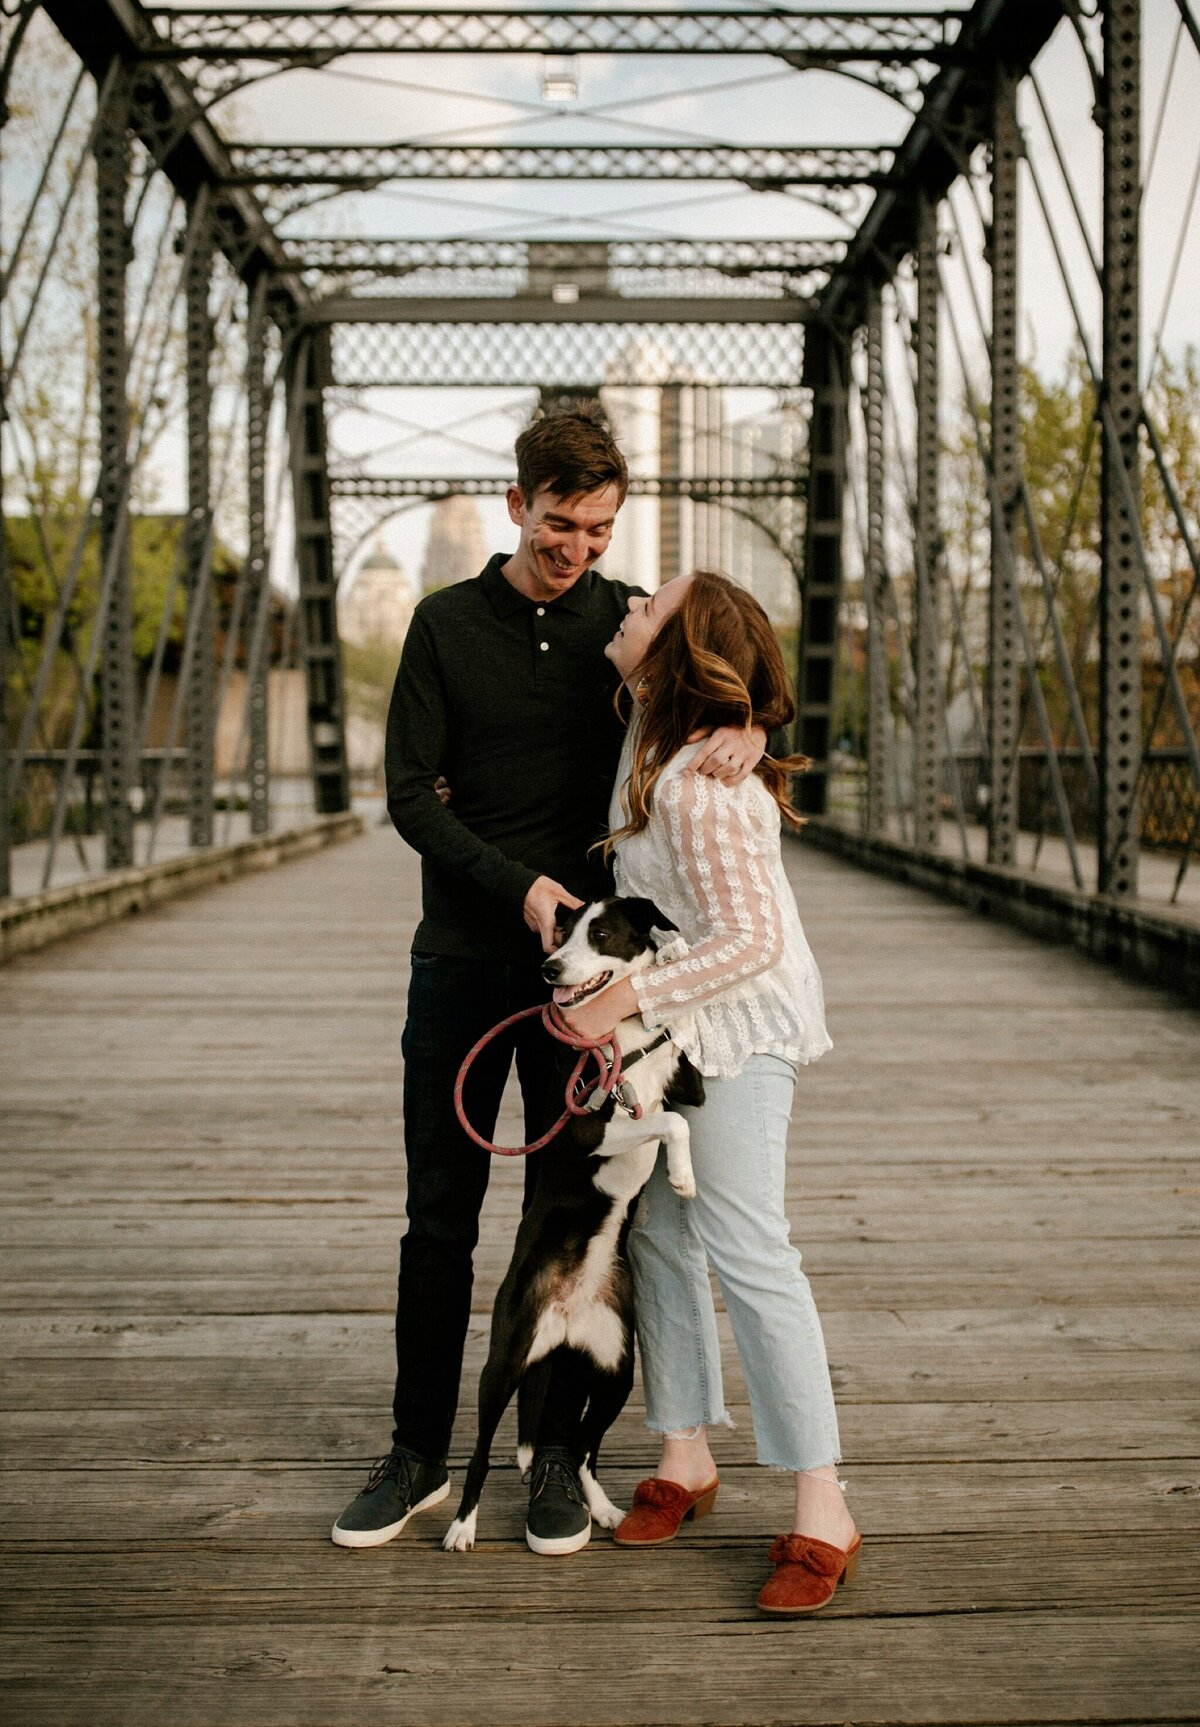 meg-thompson-photography-promenade-park-downtown-fort-wayne-engagement-session-megan-logan-2